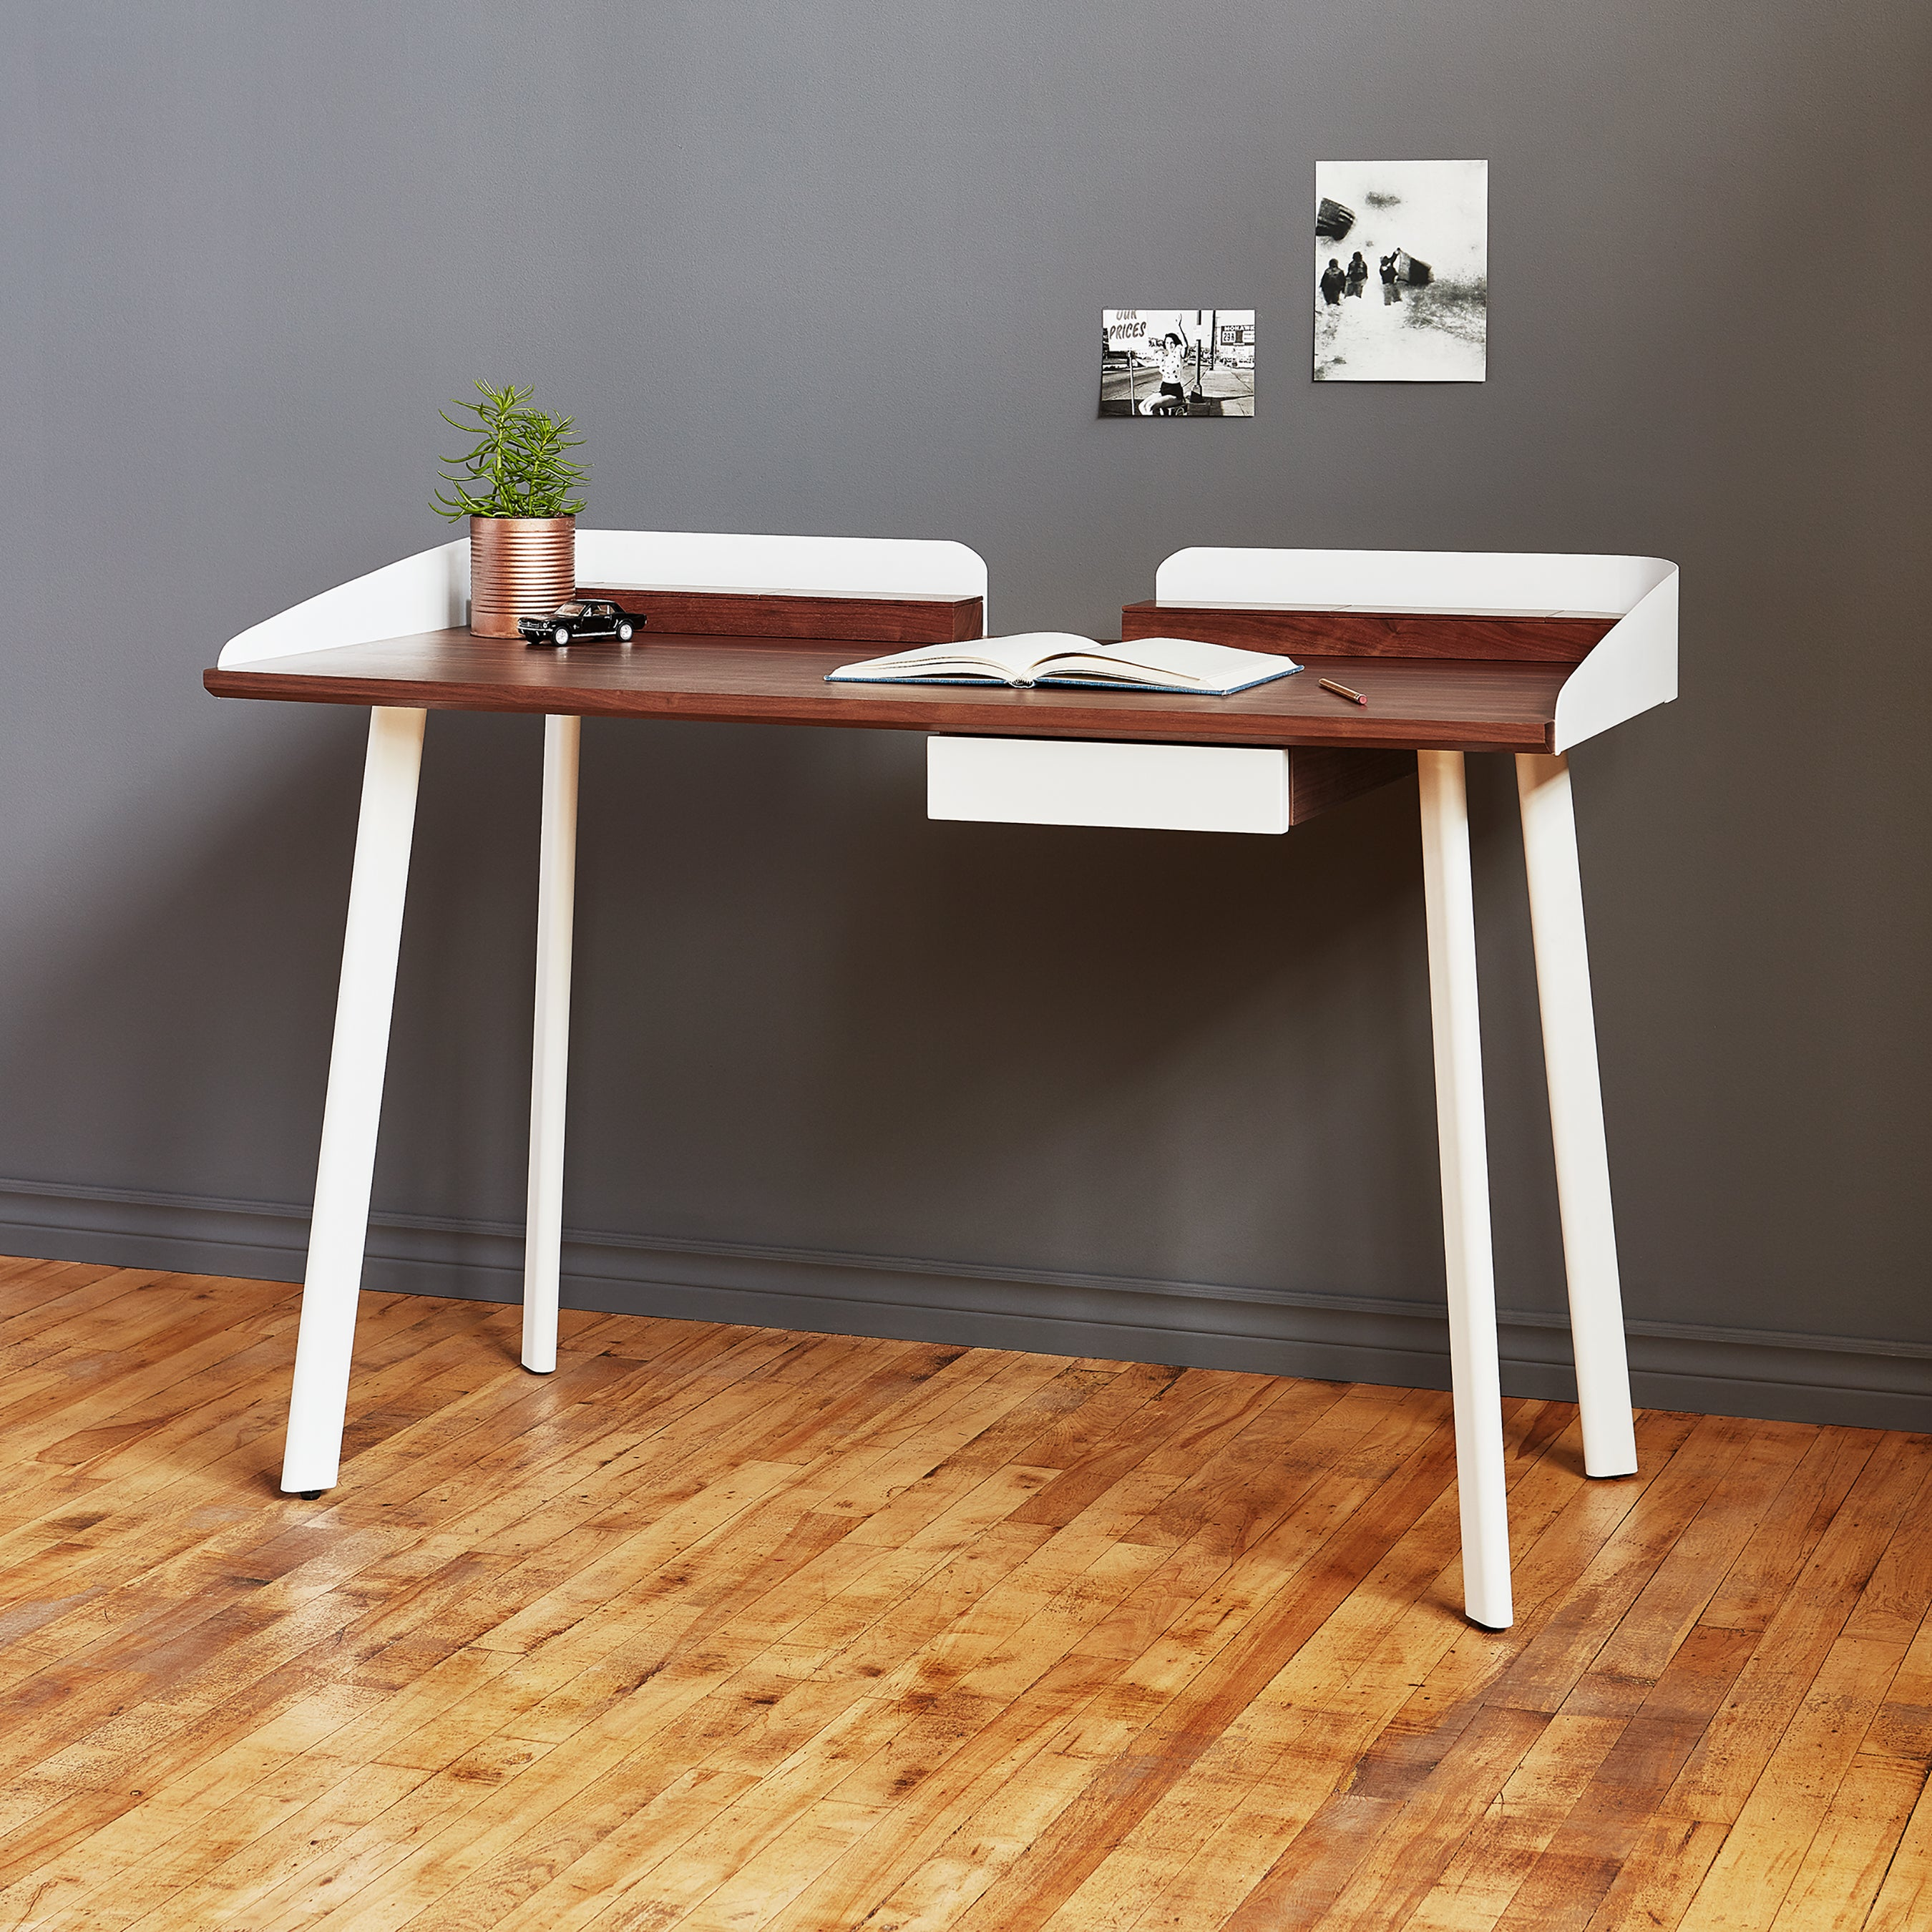 Gus* Modern Gander Desk - Walnut White